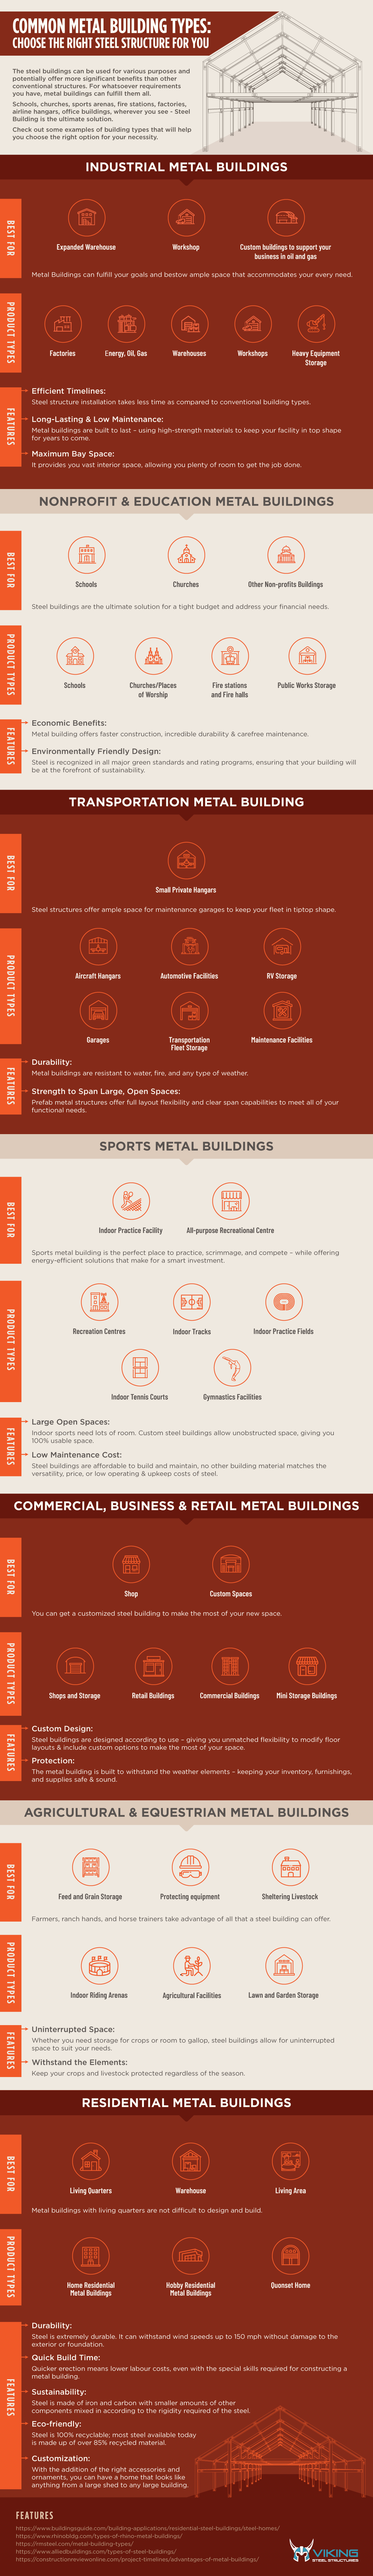 Common Metal Building Types: Choose the Right Steel Structure for You